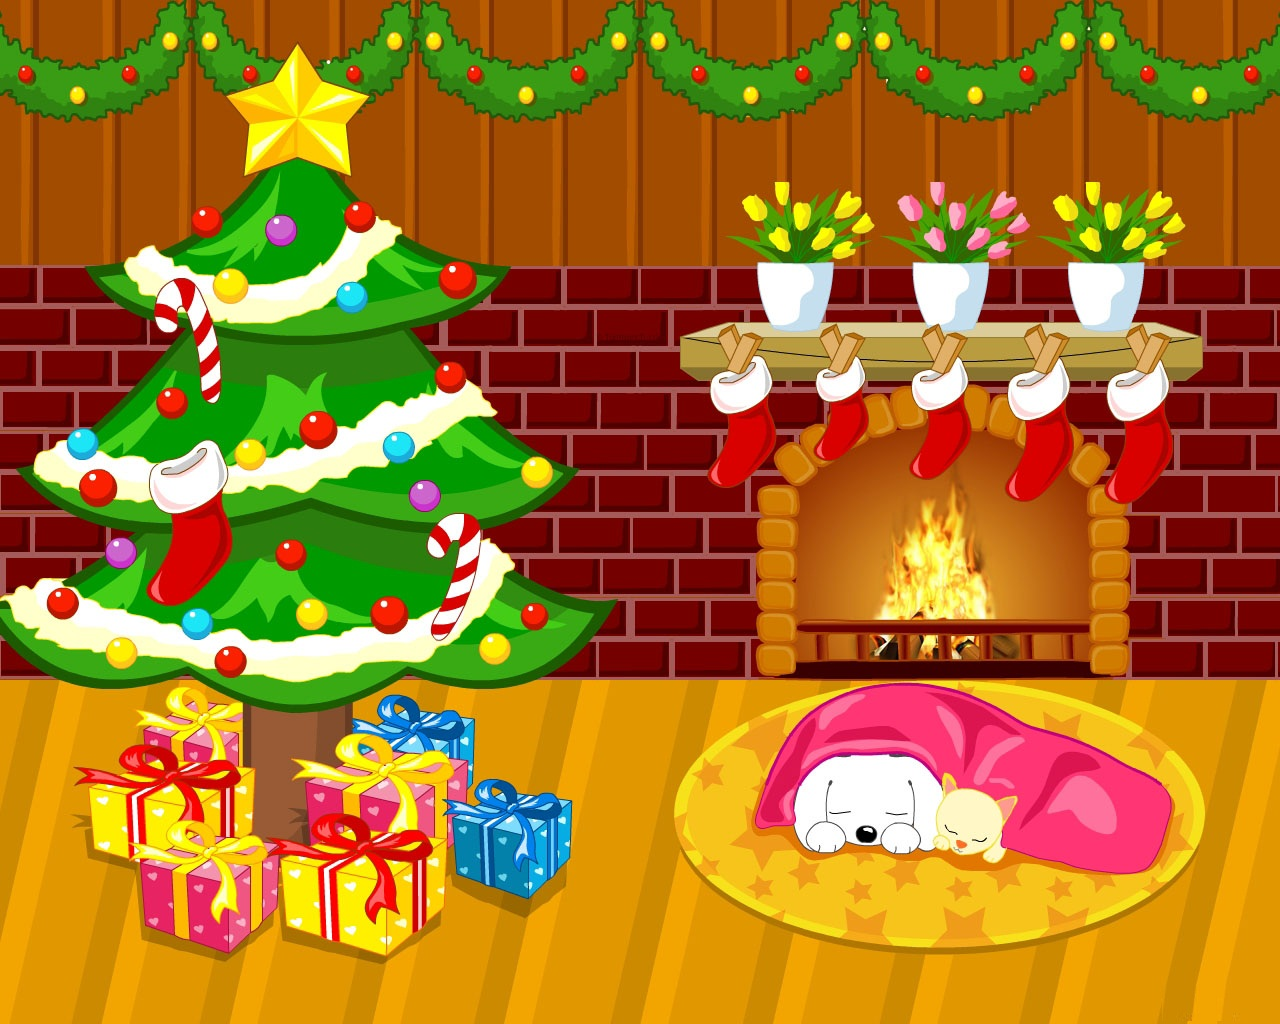 merry christmas cartoon images free pictures 2018 merry christmas cartoon images free